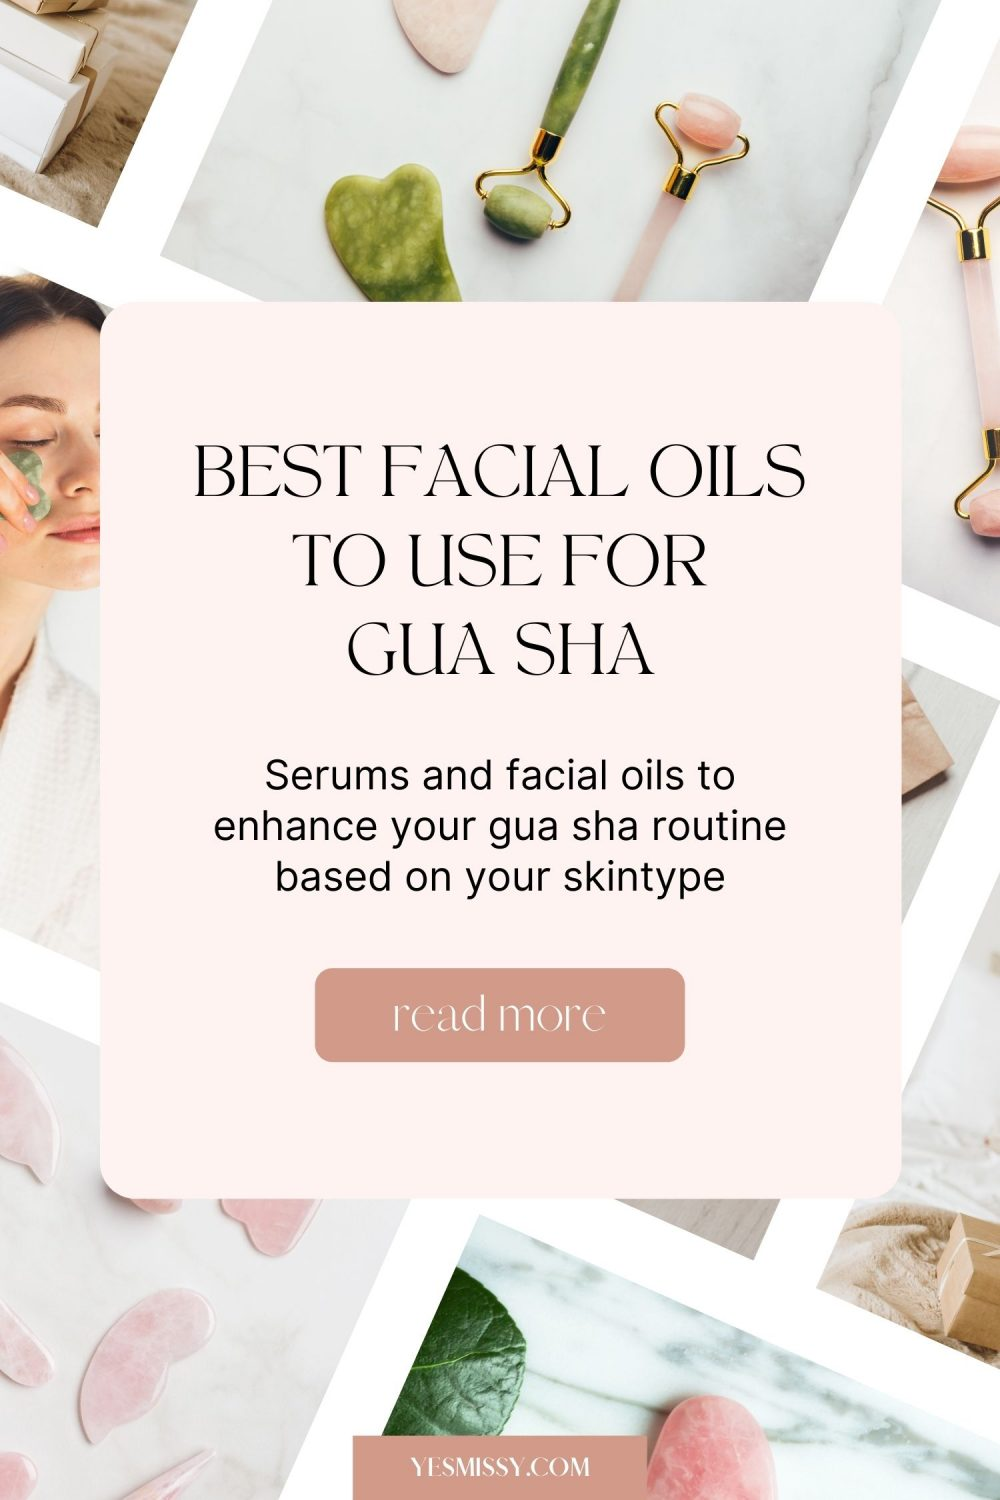 When it comes to gua sha, the best facial oils are typically lightweight, non comedogenic, and will provide nourishment to you skin. Learn more about it on yesmissy.com